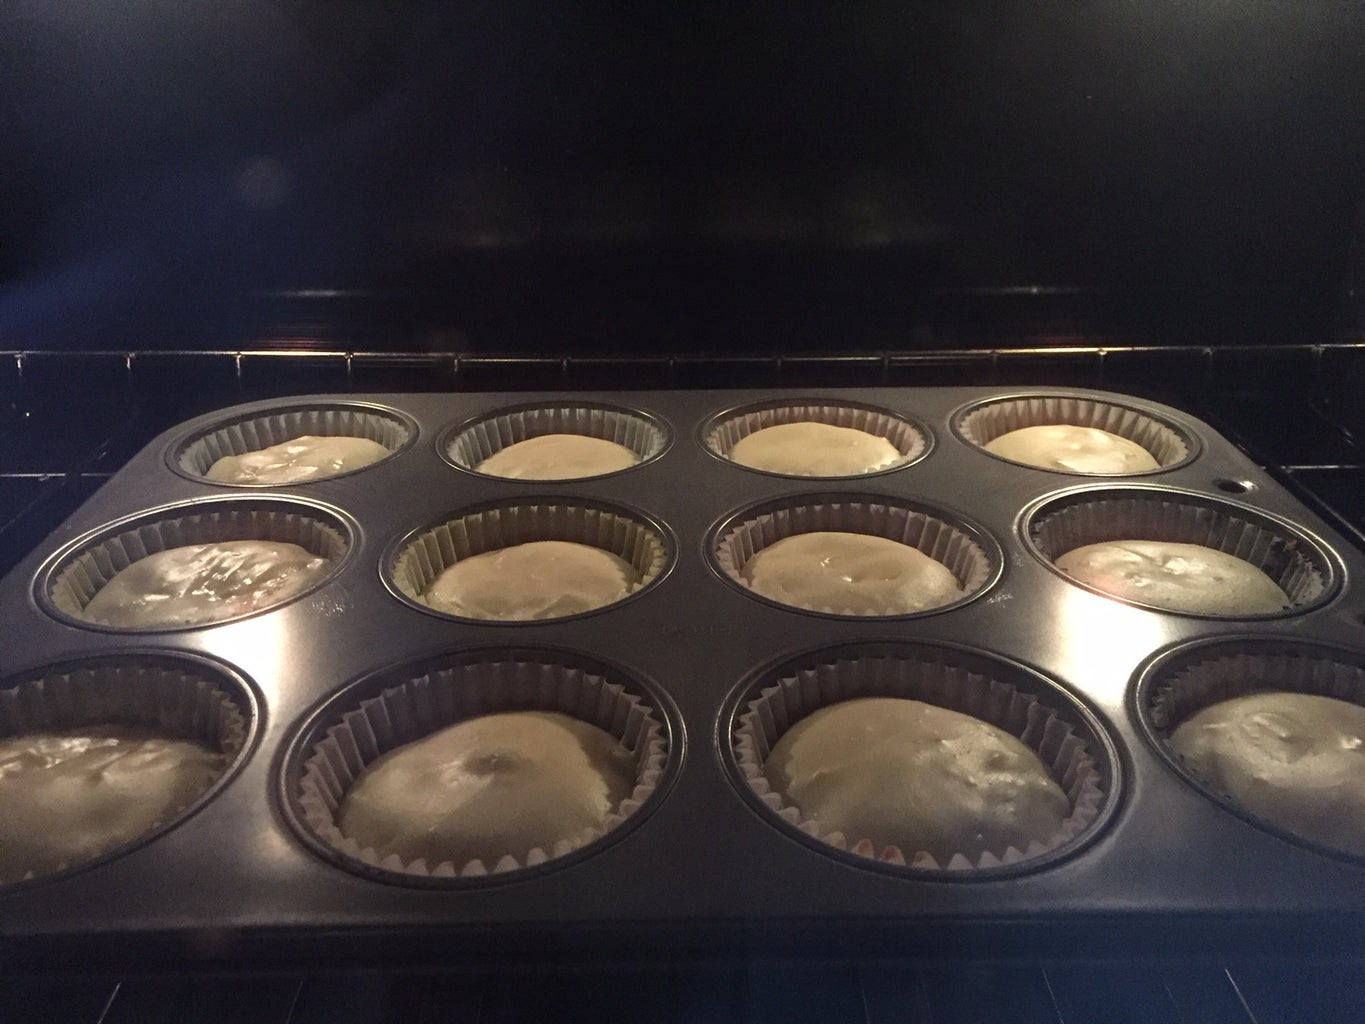 Bake at 300 F for 20-25 Minutes.